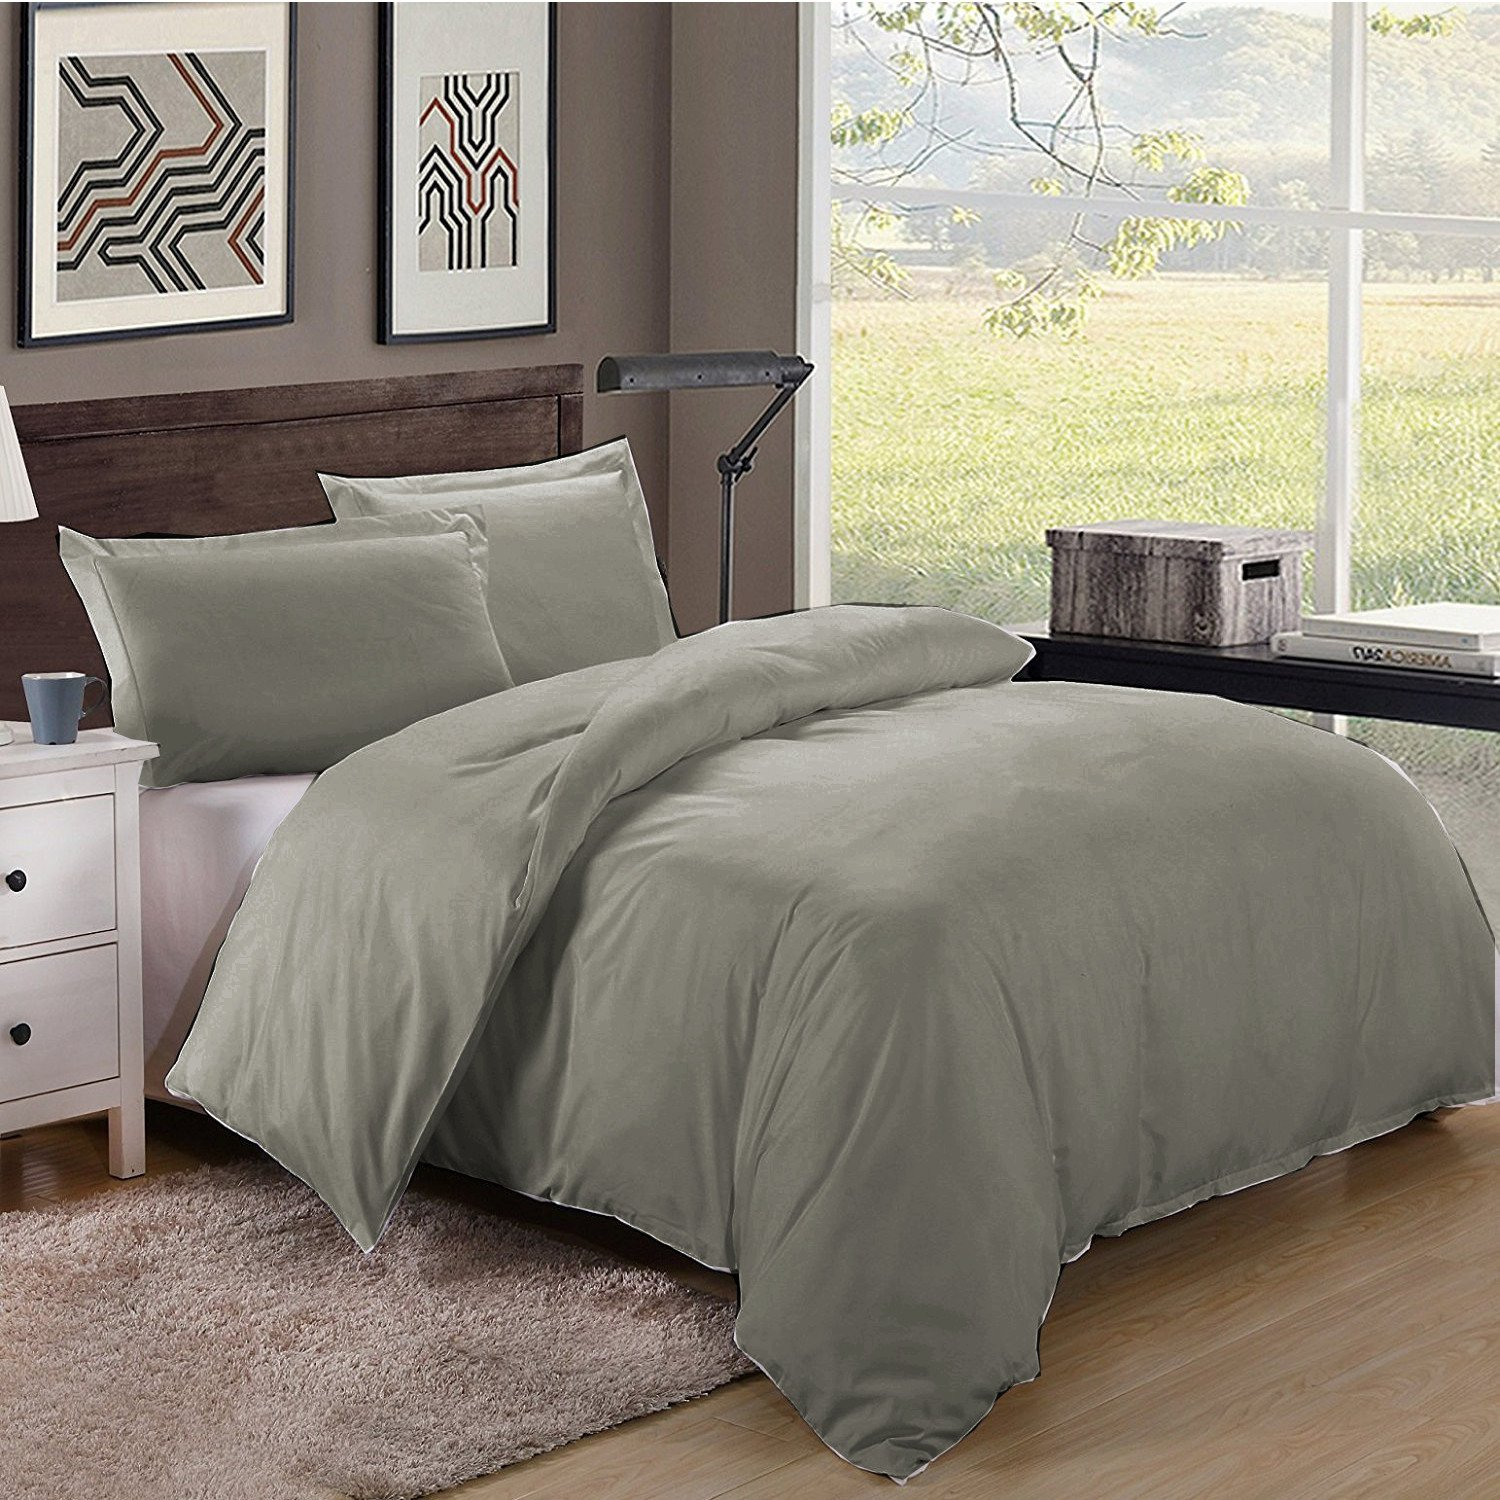 Full/Queen Size 600TC 100% Egyptian Cotton ultra soft Duvet Cover 3pcs Set ,Dark Grey